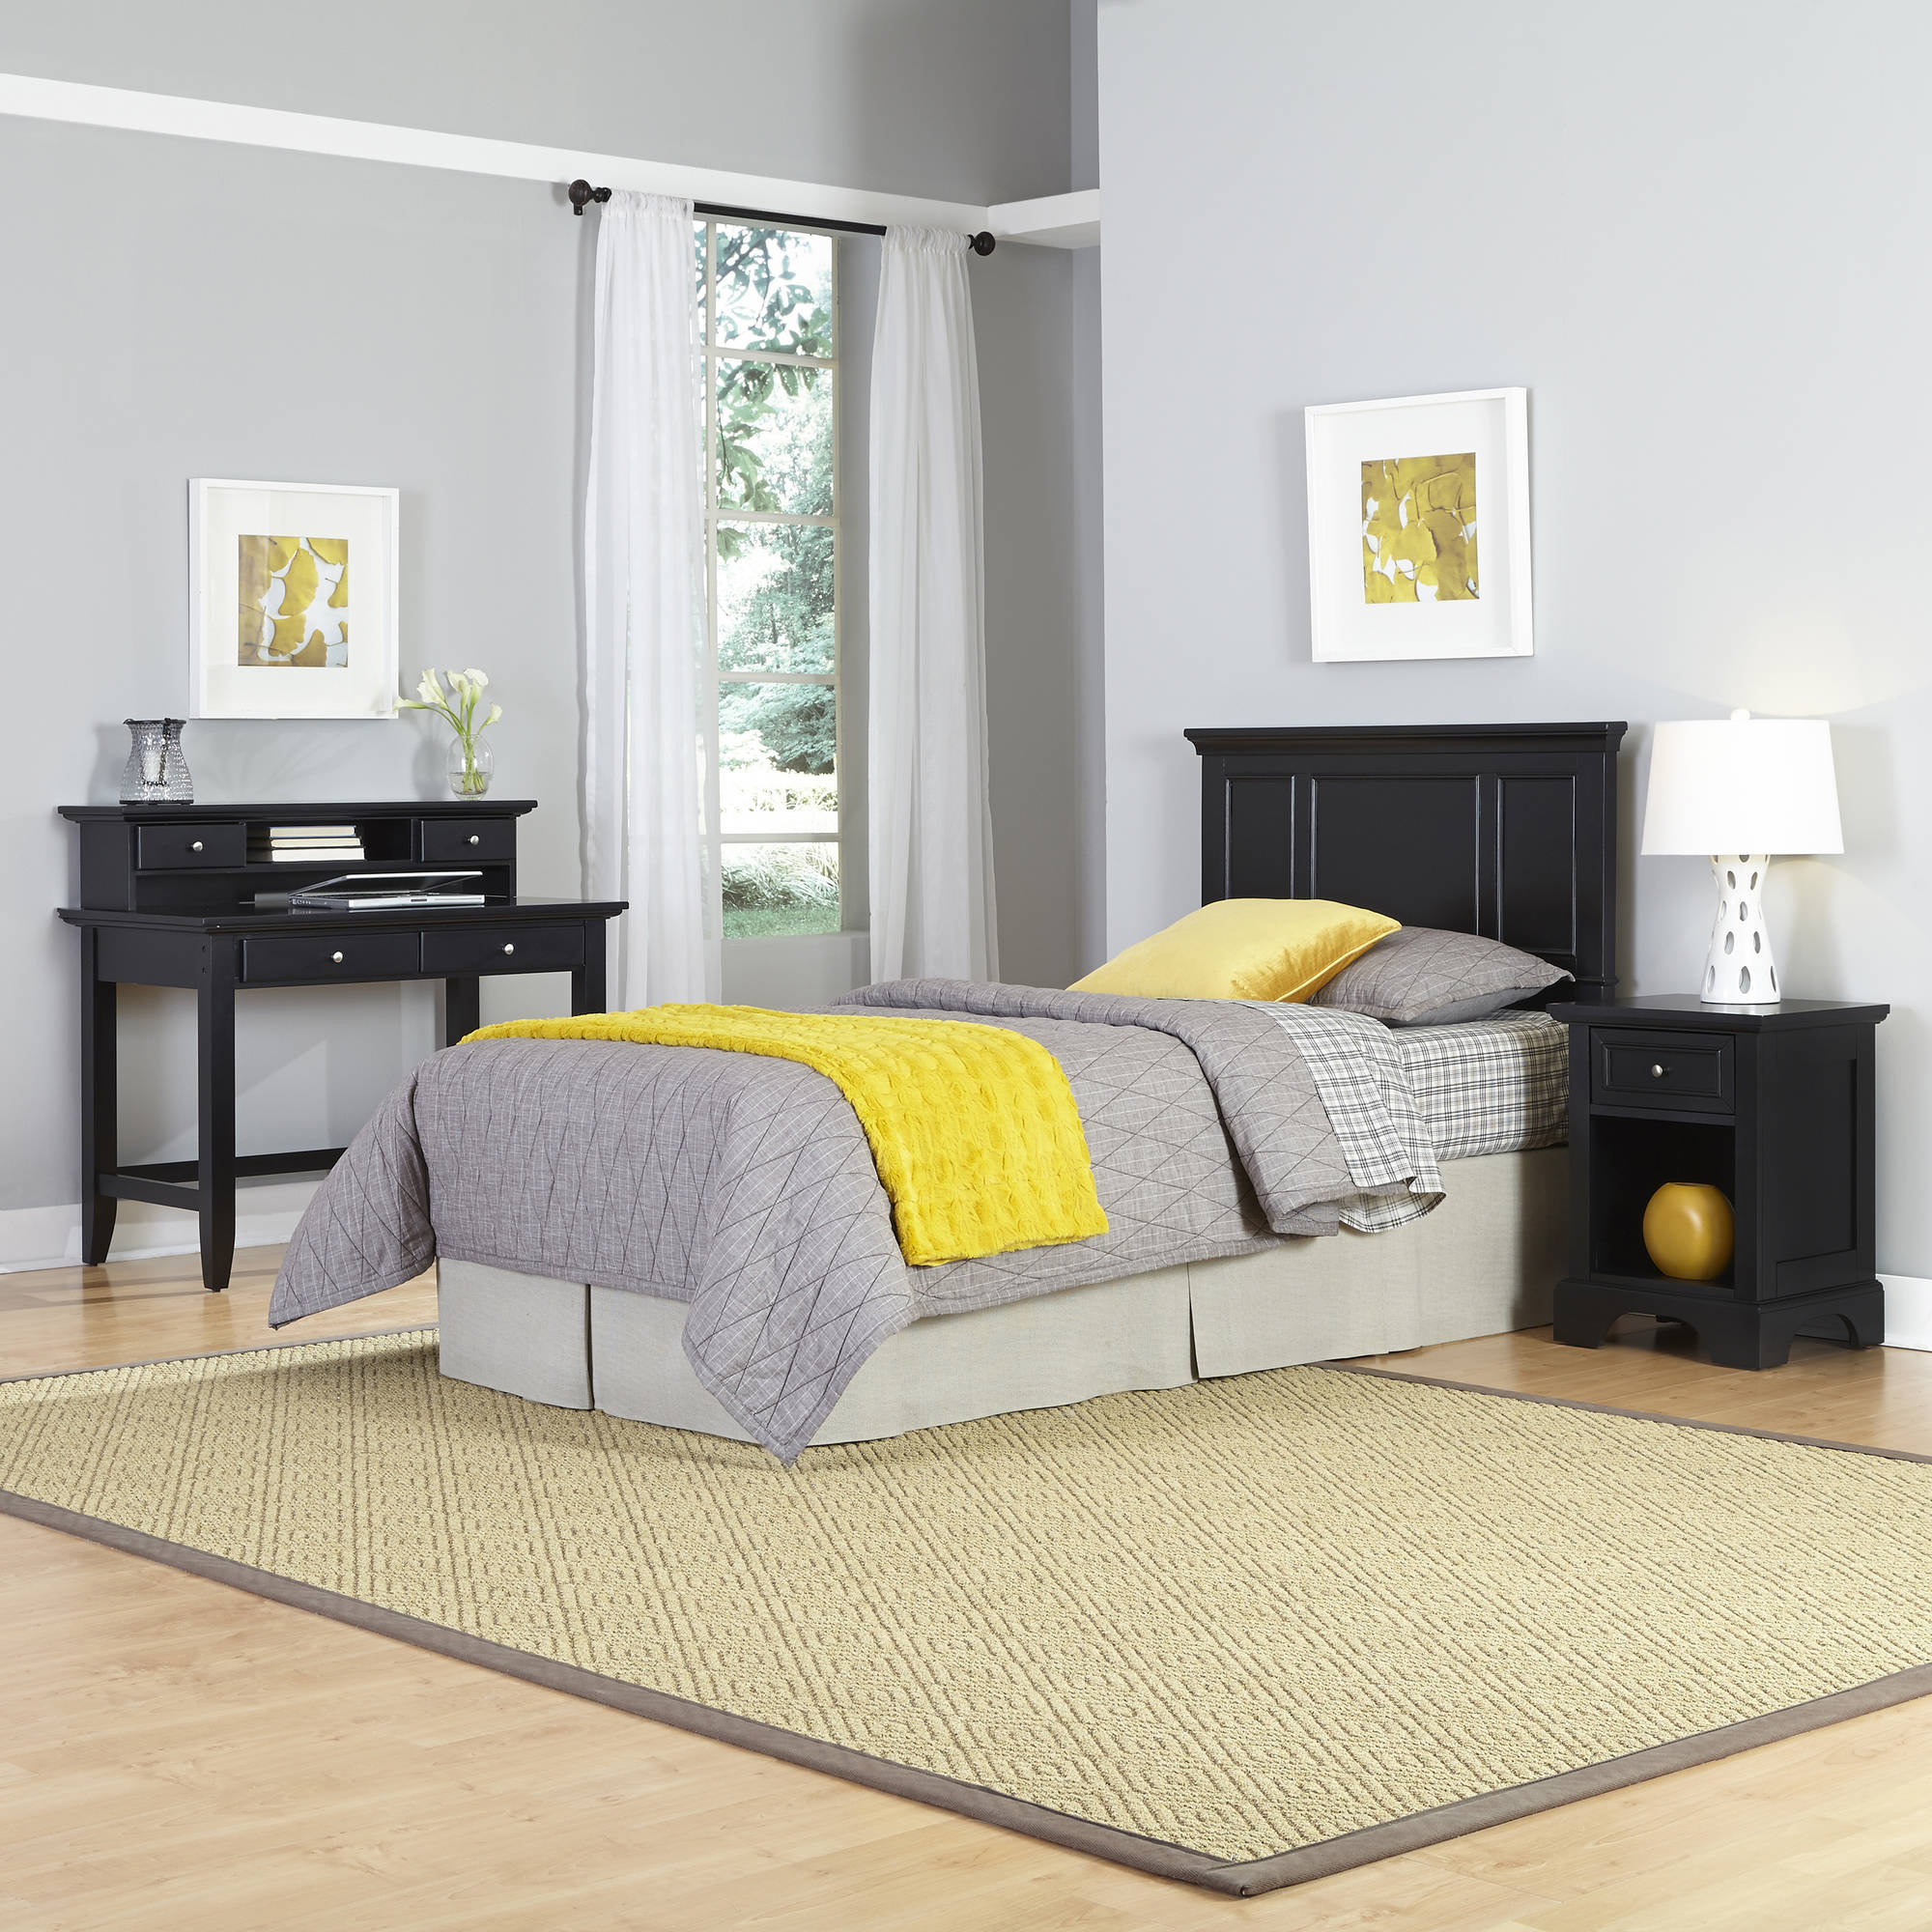 Home Styles Bedford Twin Headboard, Night Stand and Student Desk with Hutch